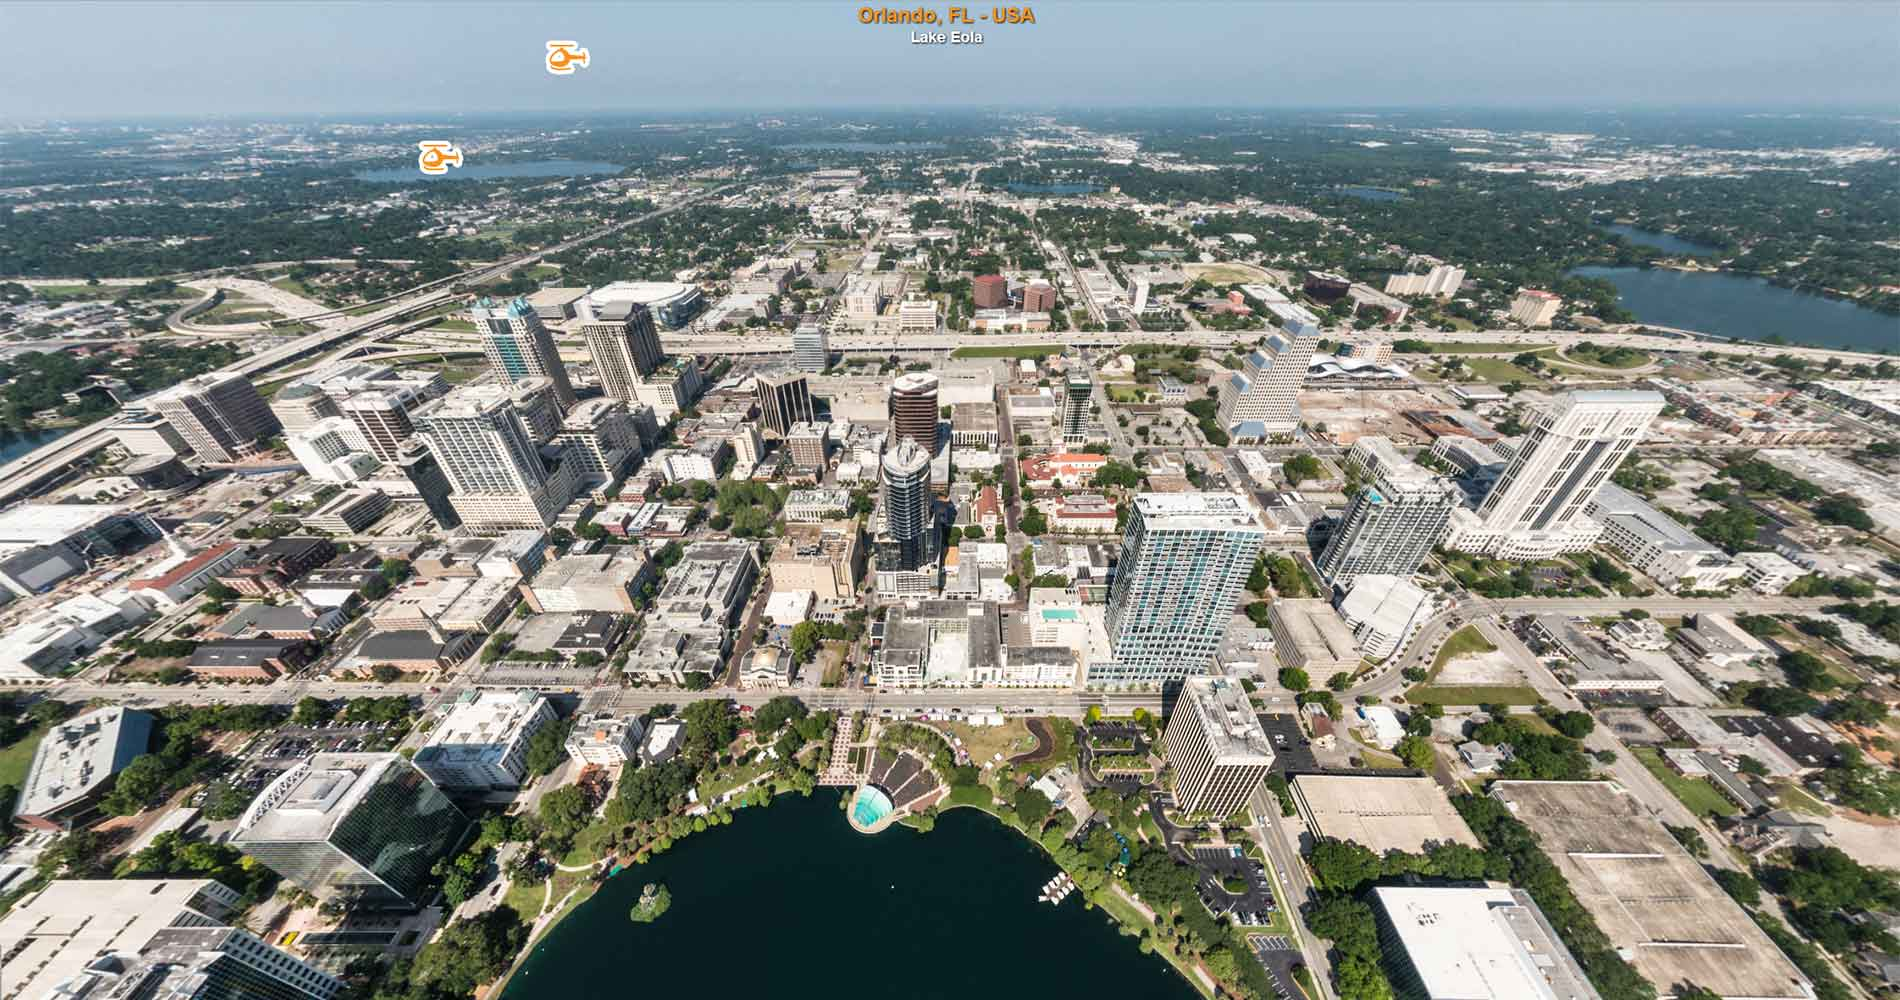 The Gran Aerial Virtual Tour of Orlando is now online